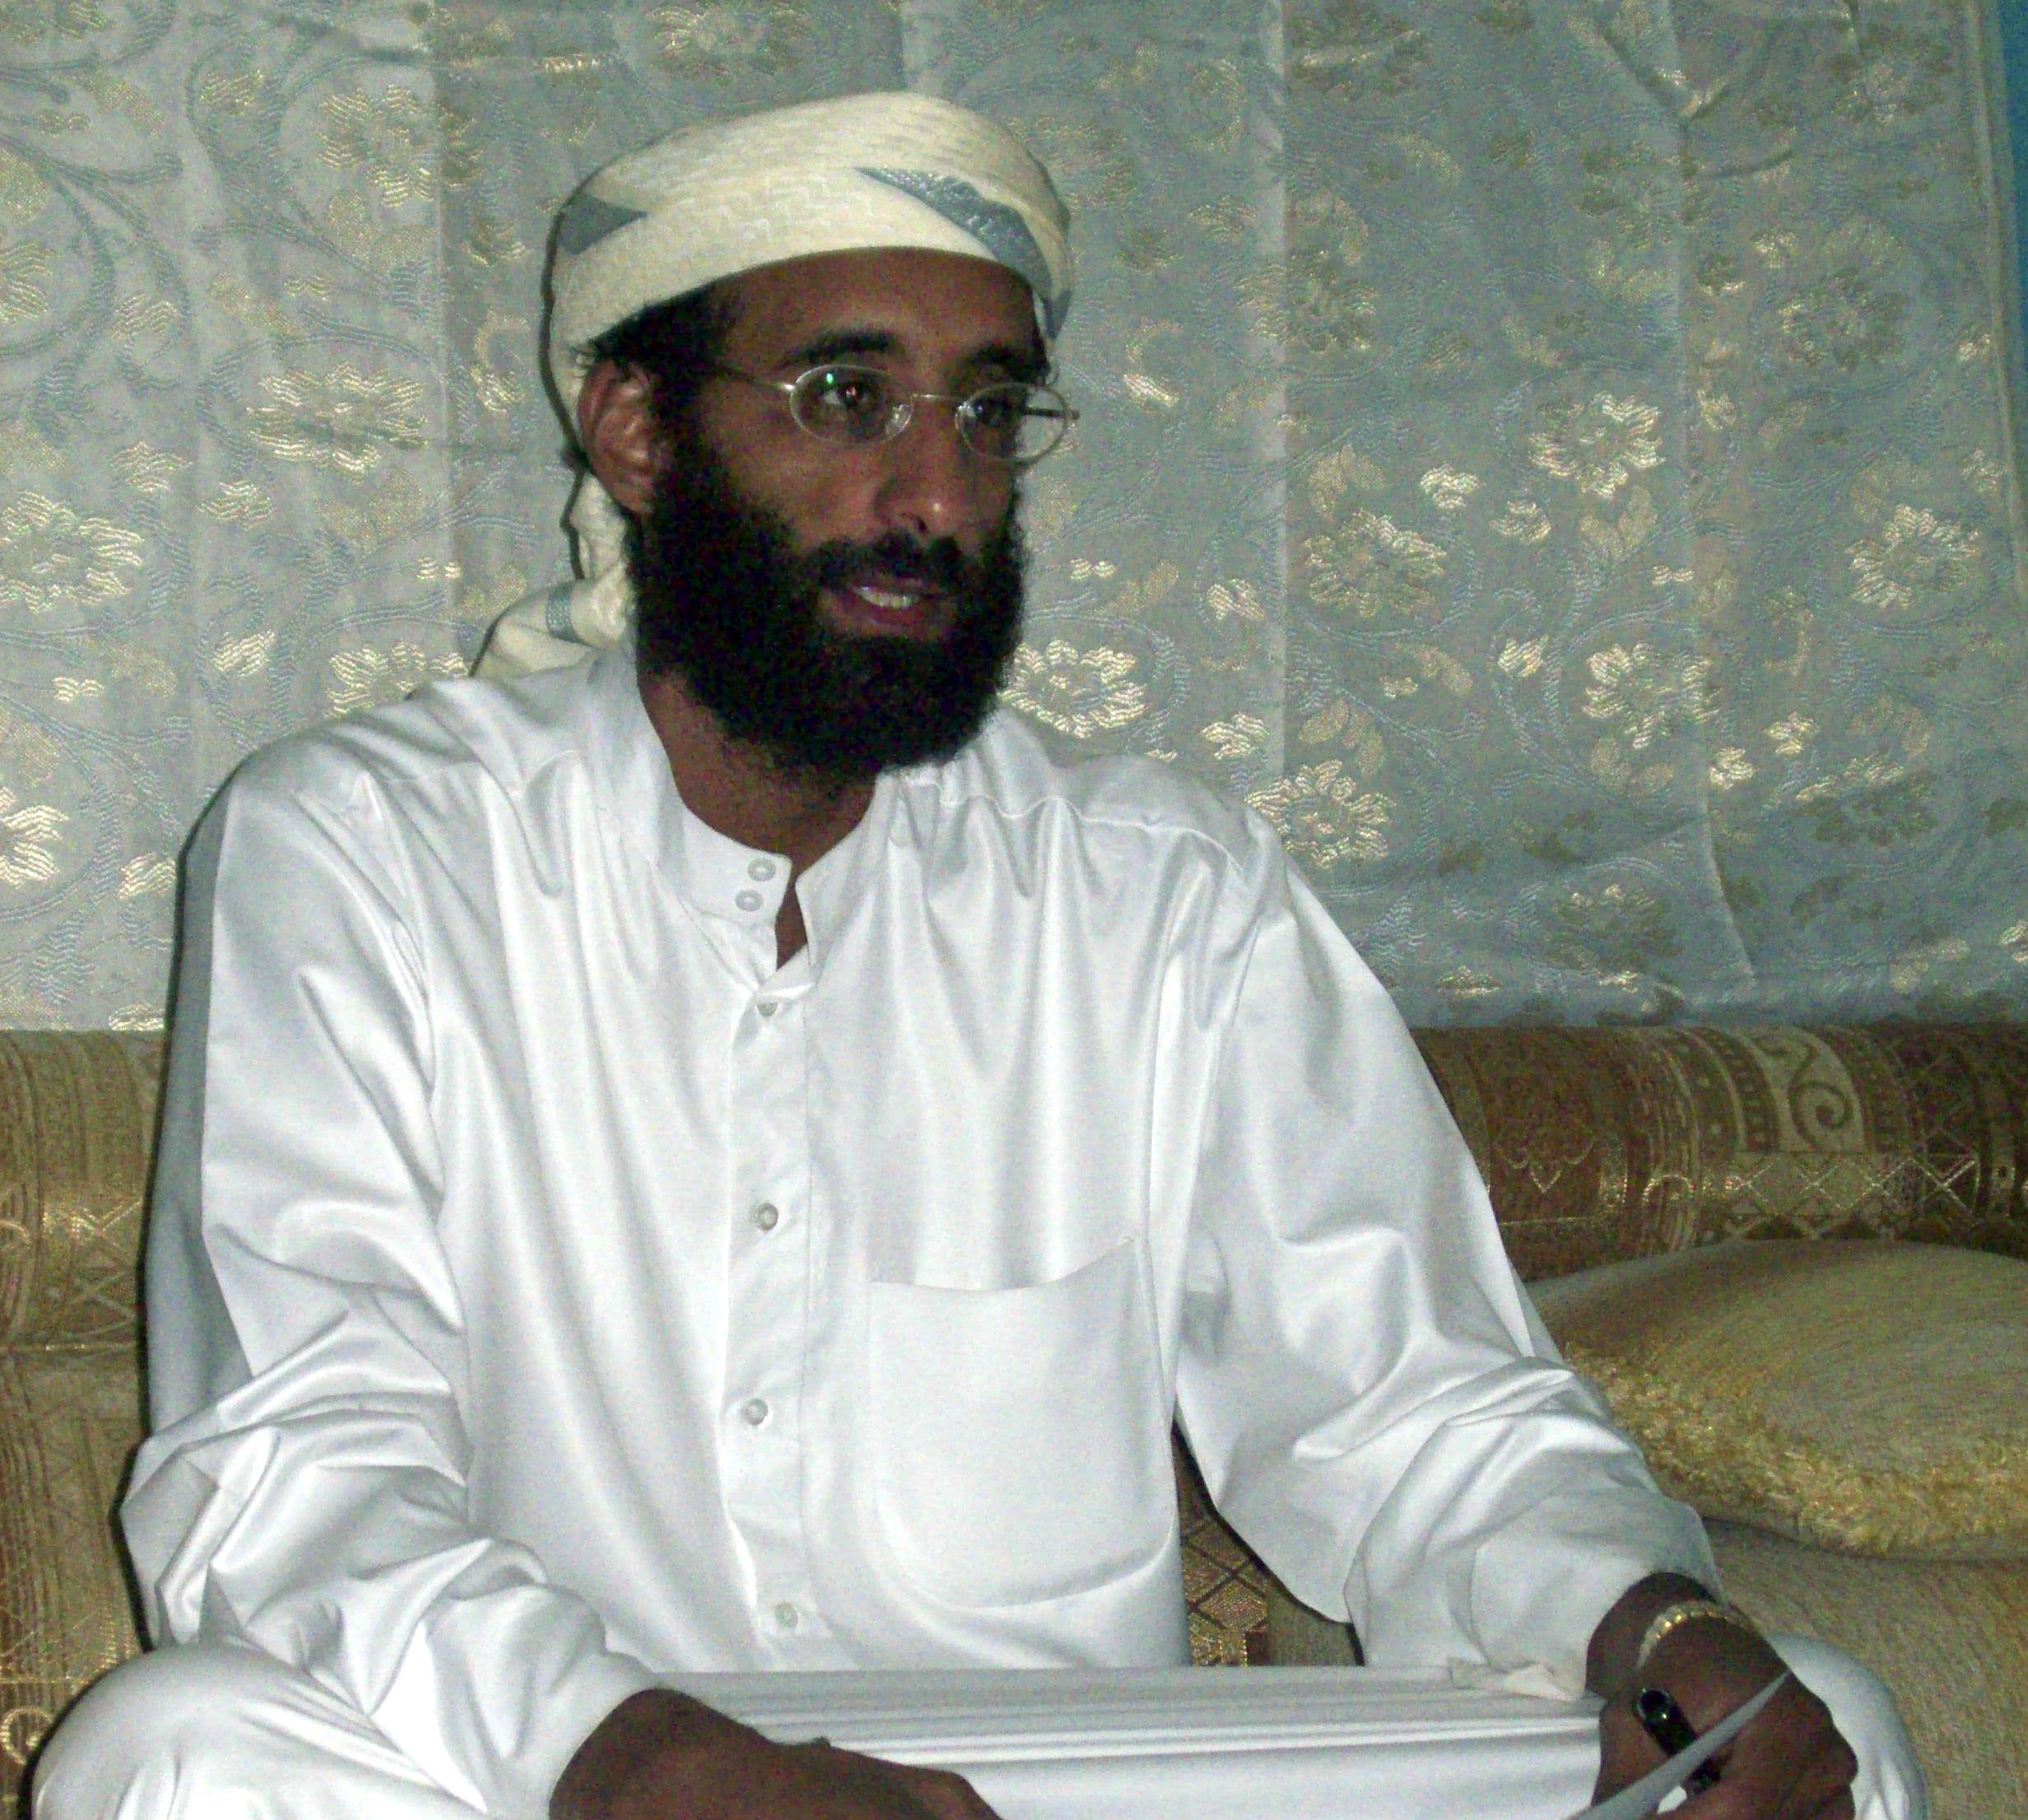 This October 2008 file photo shows Anwar al-Awlaki in Yemen. He was killed in a U.S. drone strike three years later, in 2011